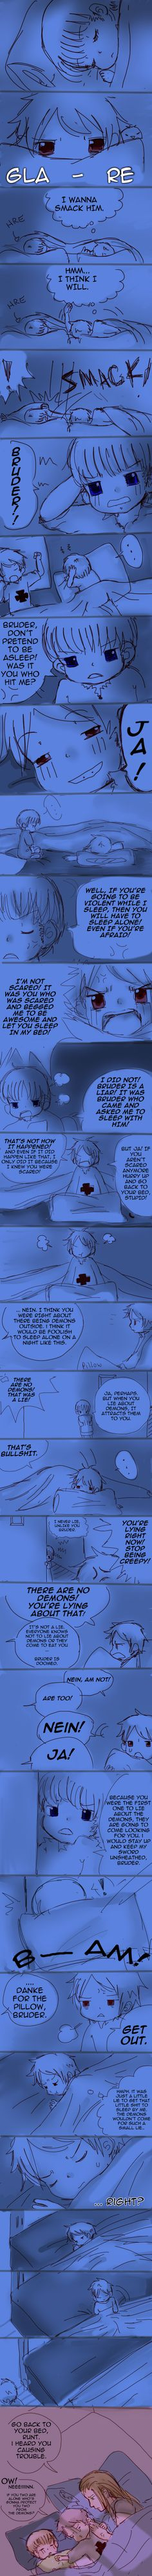 APH: Don't lie about Demons by Assby.deviantart.com on @deviantART - Aw...this is really funny: Aww cuties